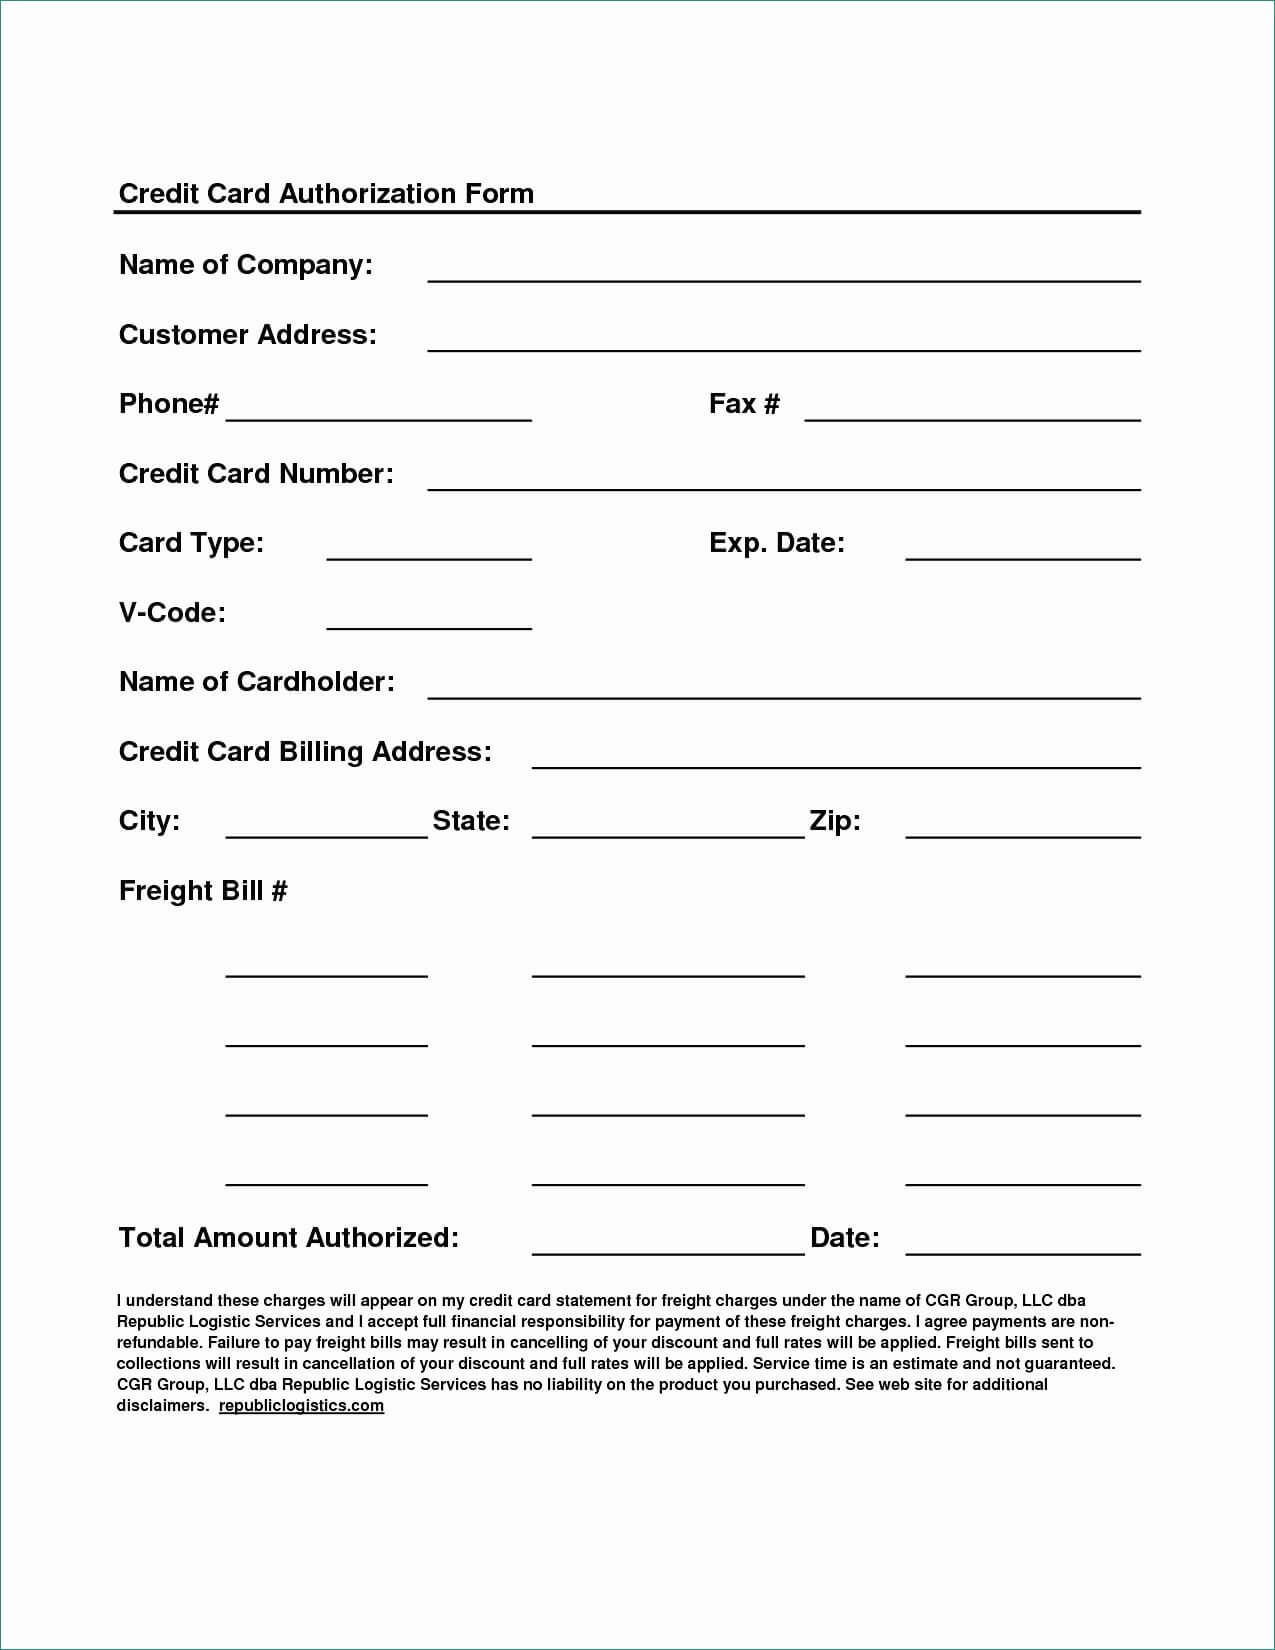 023 Template Ideas Credit Card Form Authorization Pdf Of regarding Credit Card Billing Authorization Form Template